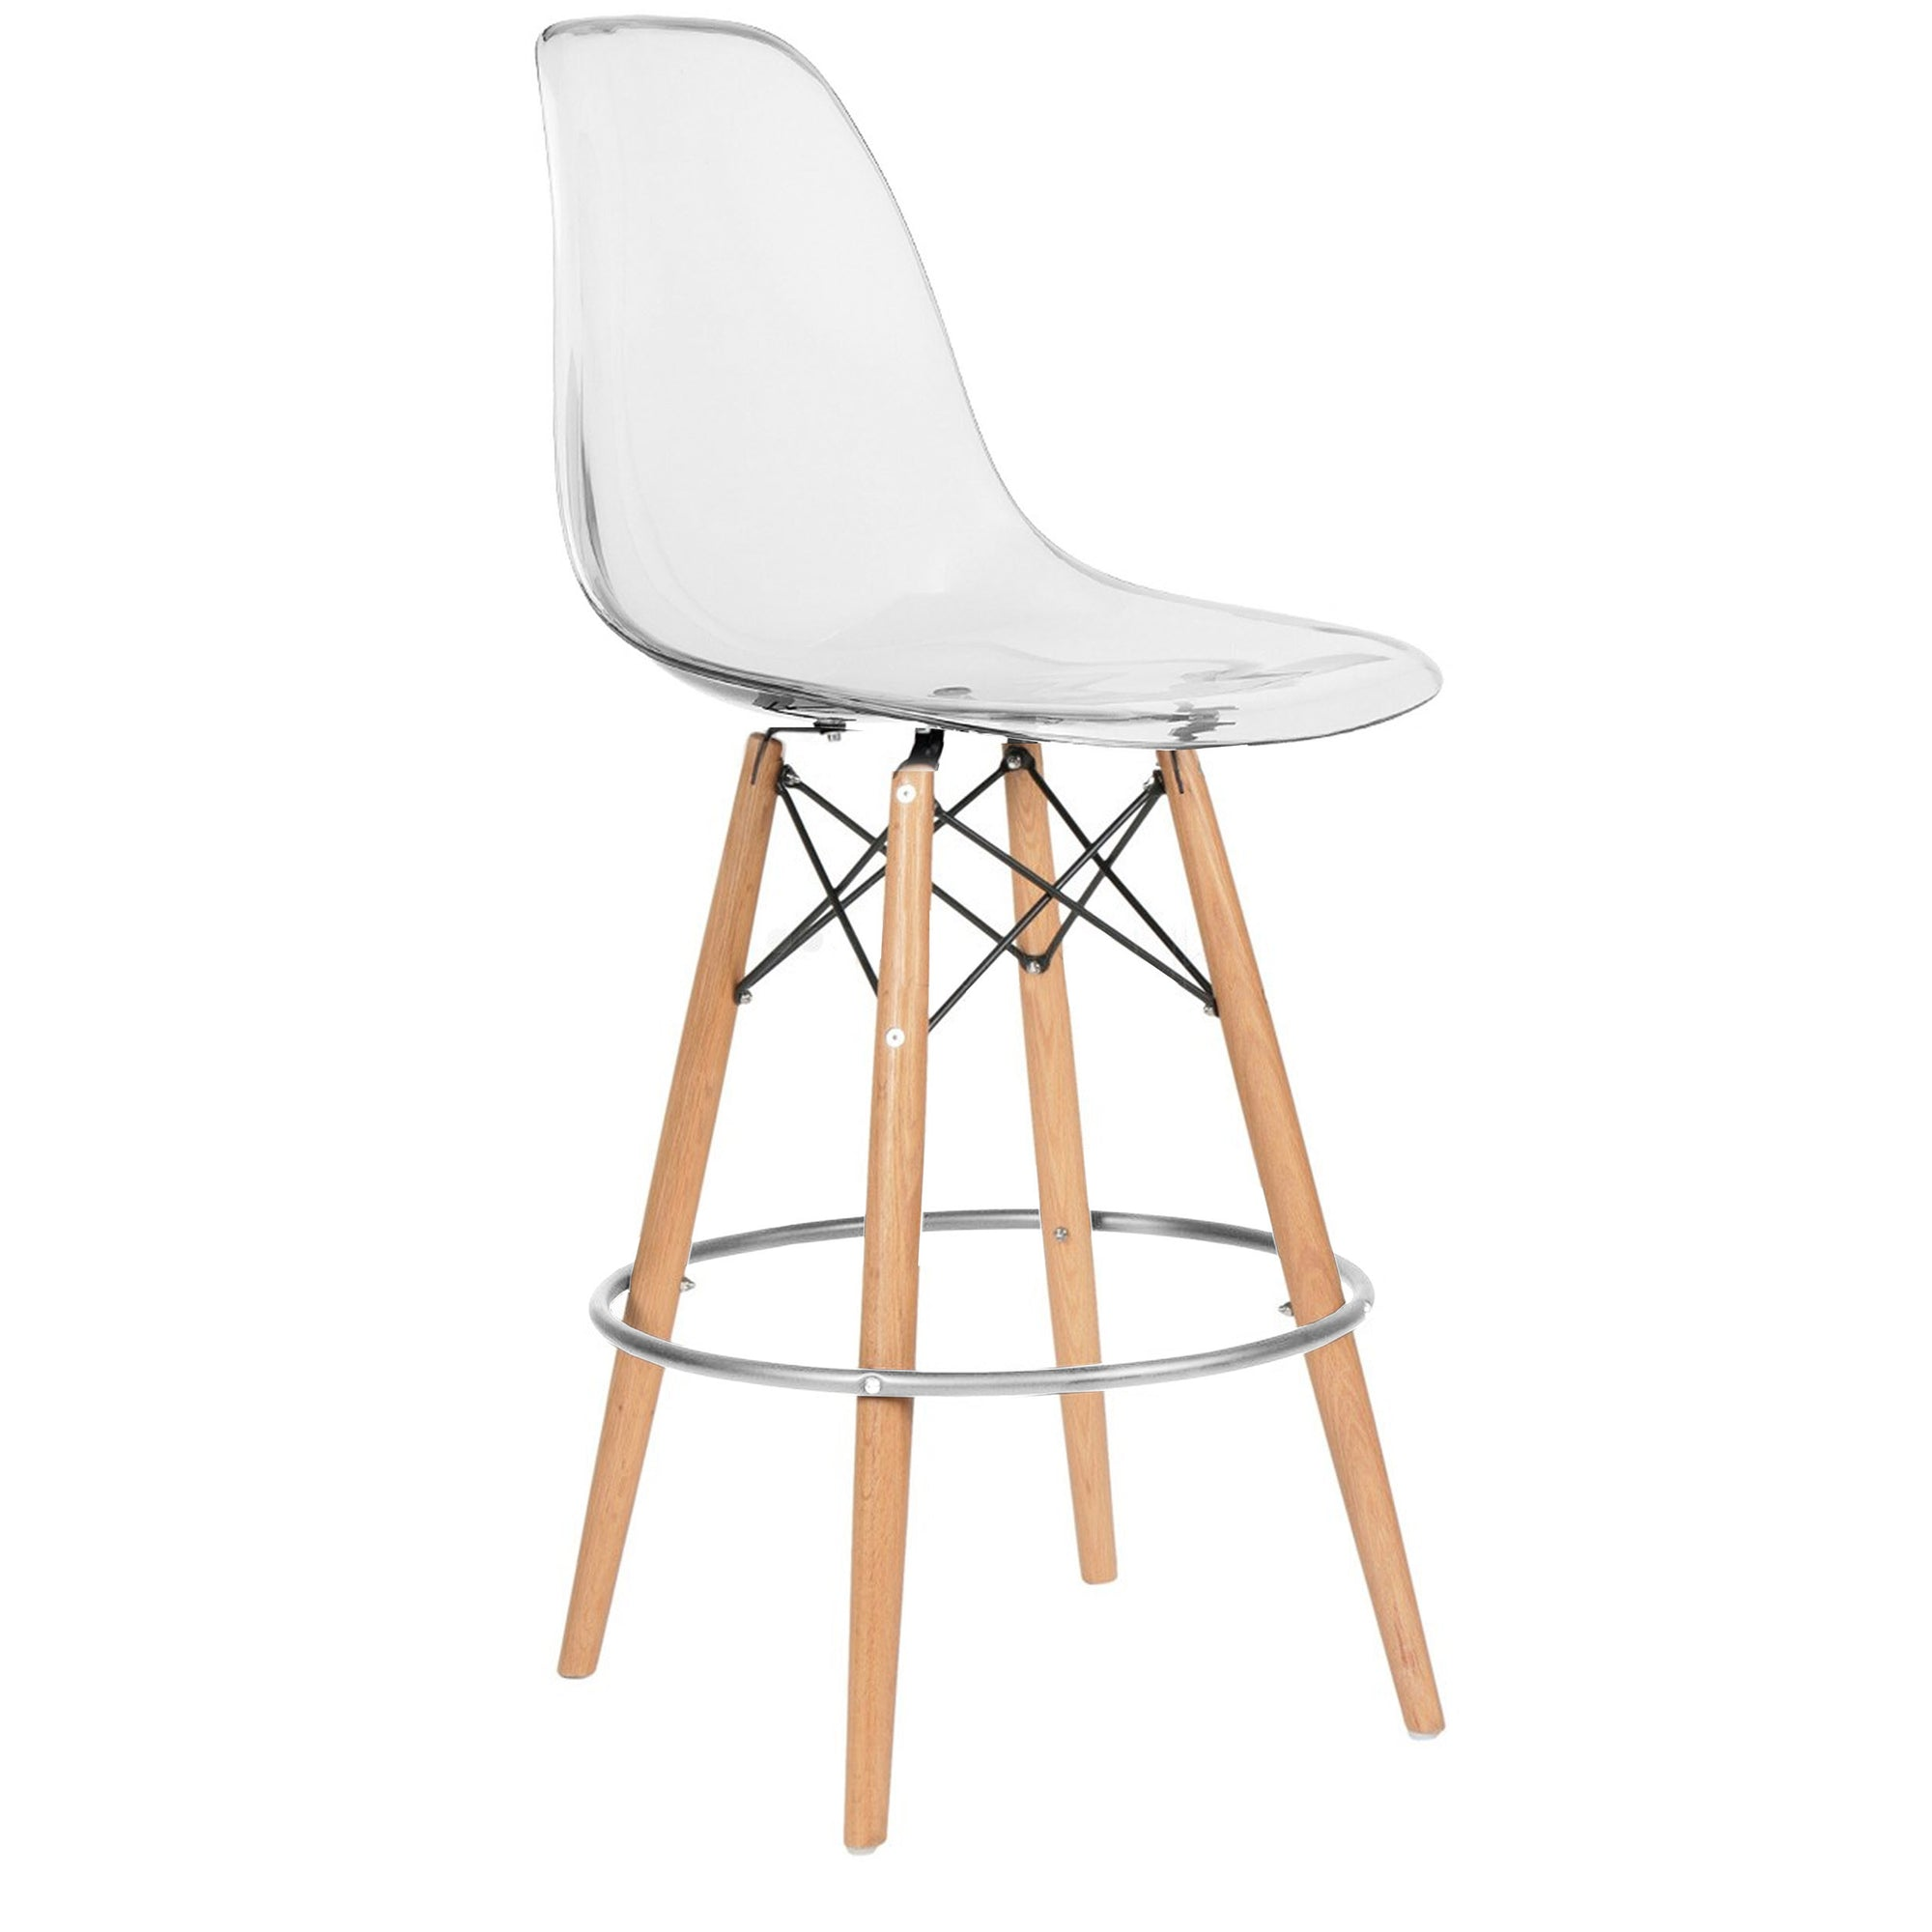 BarChair-Acrylic MSB00155C -  كرسي - اكريليك - Shop Online Furniture and Home Decor Store in Dubai, UAE at ebarza